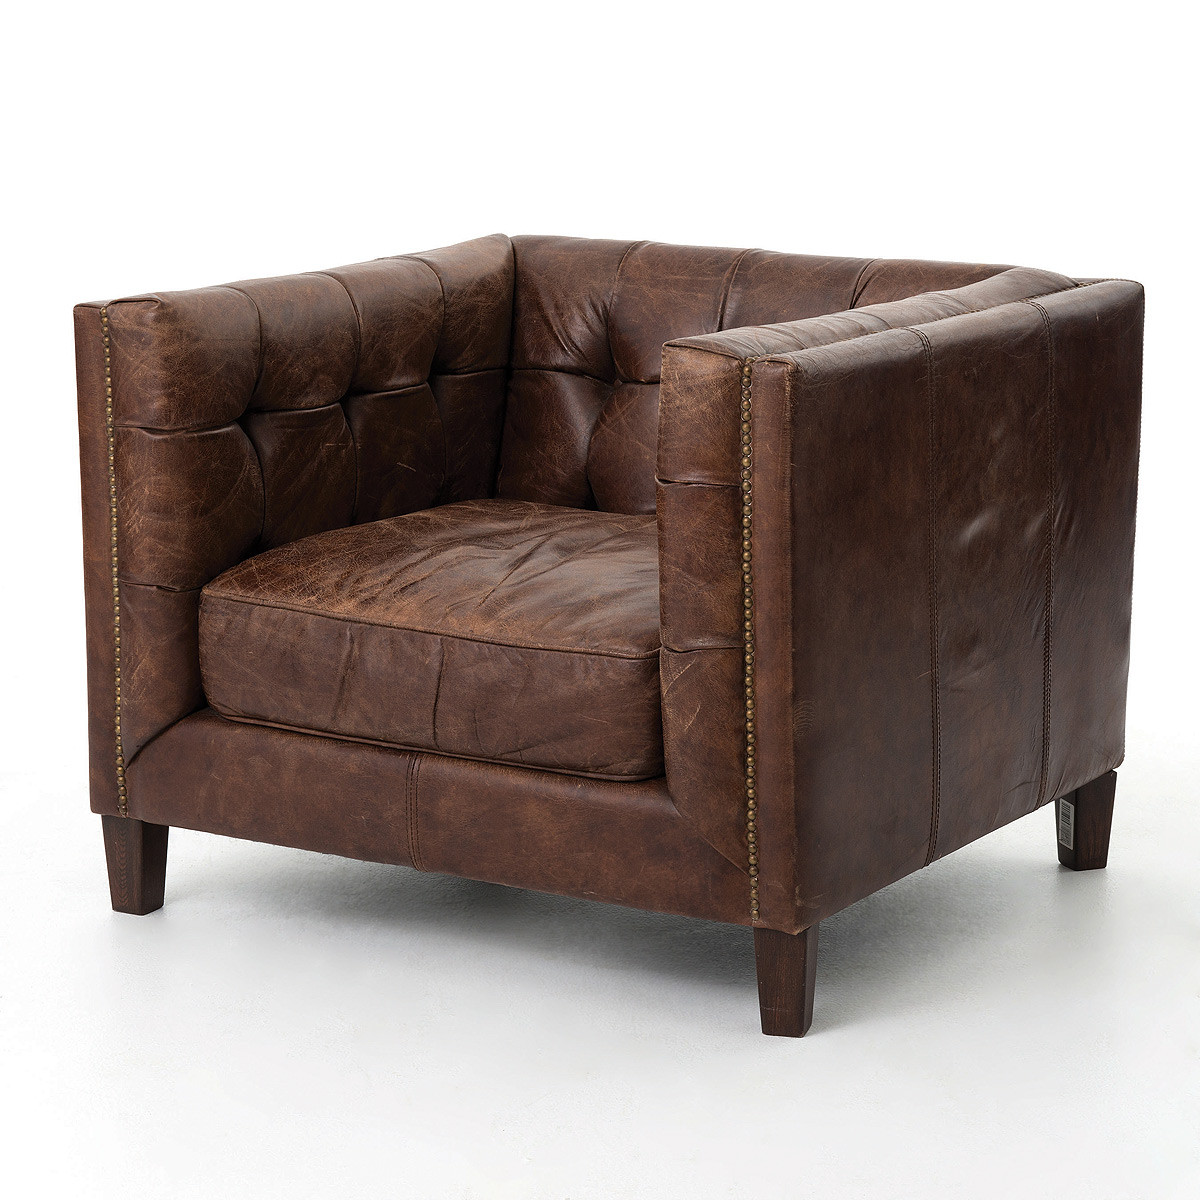 Living Room Modern Armchair Sale modern sofas leather upholstered sofa sale zin home abbott vintage cigar tufted club chair